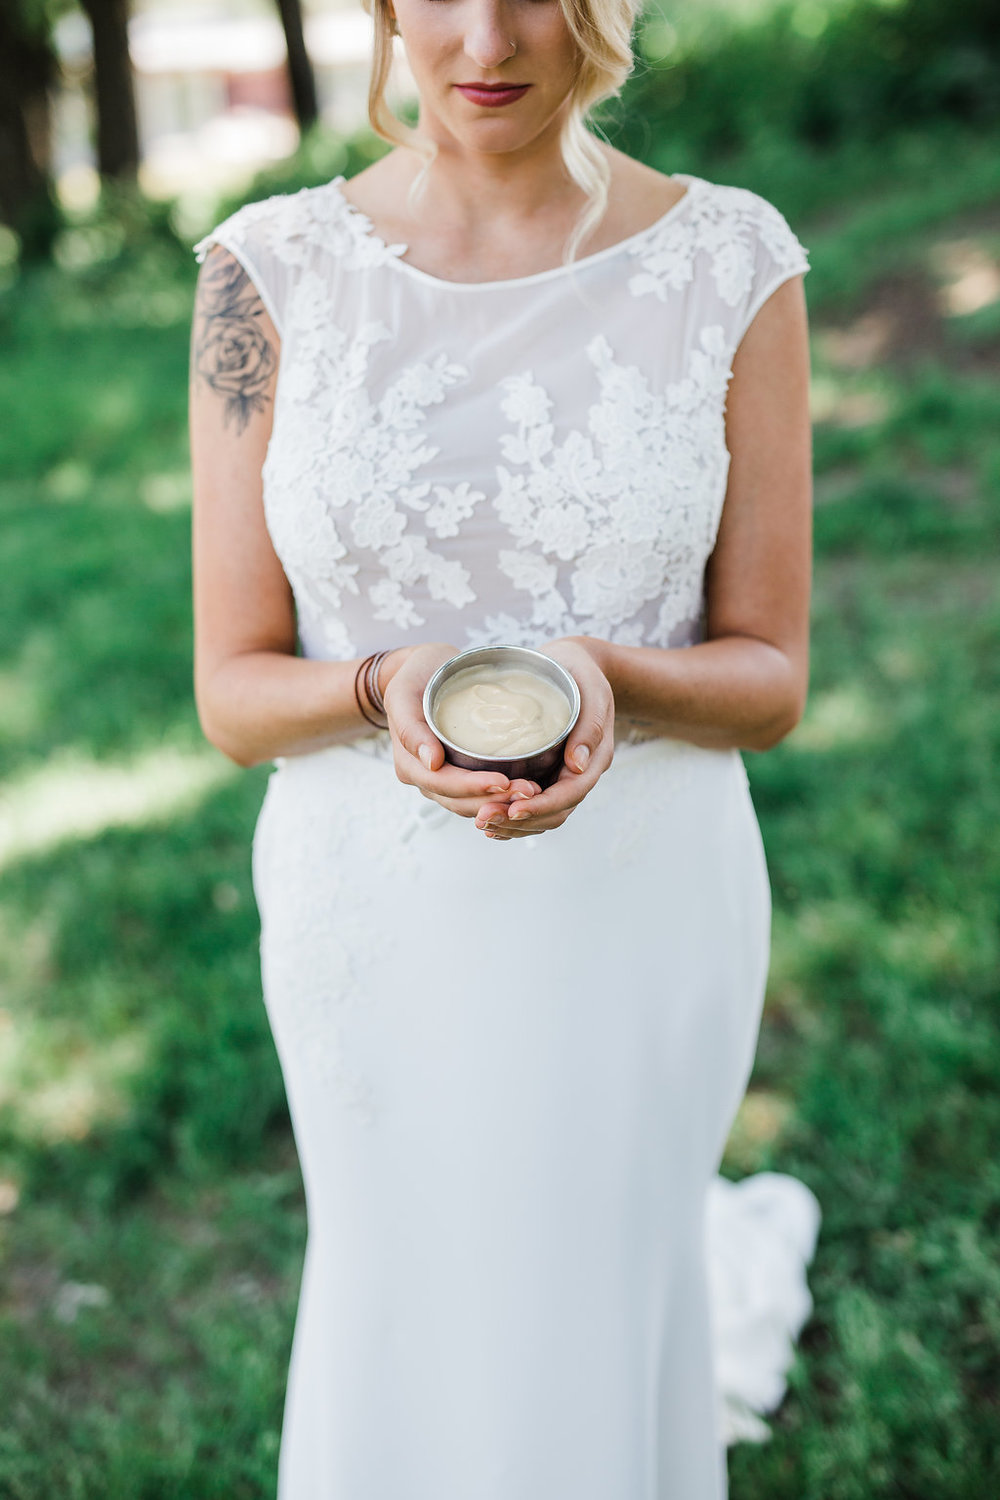 brasa rotisserie signature dessert butterscotch pudding | Minneapolis wedding planner Sixpence Events & Planning | Annika Bridal | Kyle Loves Tori photography | Cristina Ziemer beauty | Heather Trachsel Beauty | Talks to Animals Shop